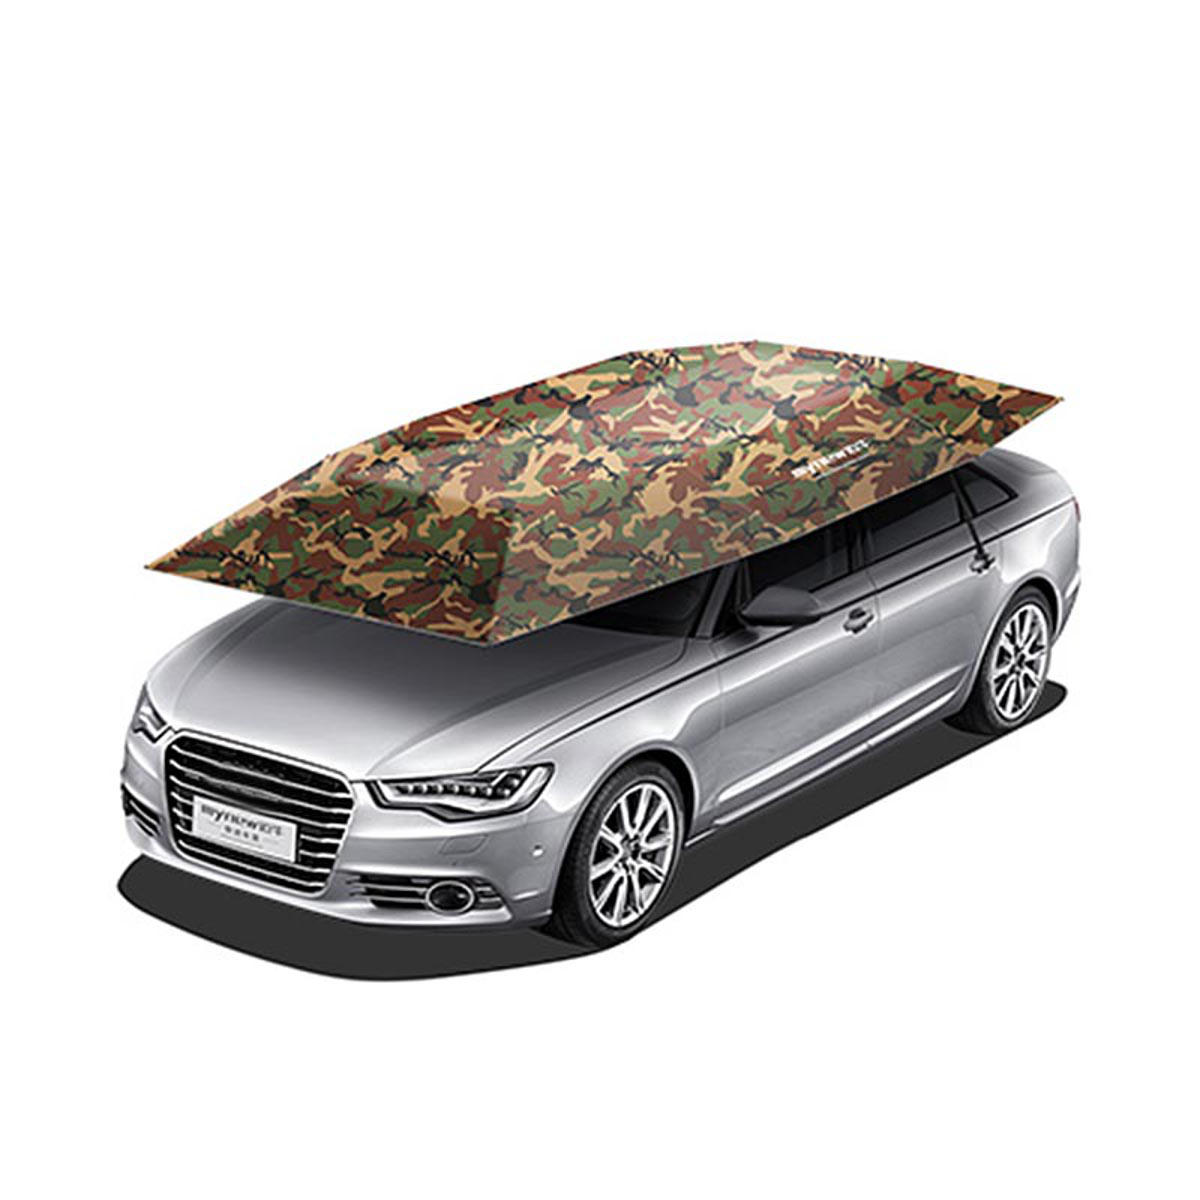 Portable Semi Auto Outdoor Car Umbrella Sunshade Roof Cover Tent Protection